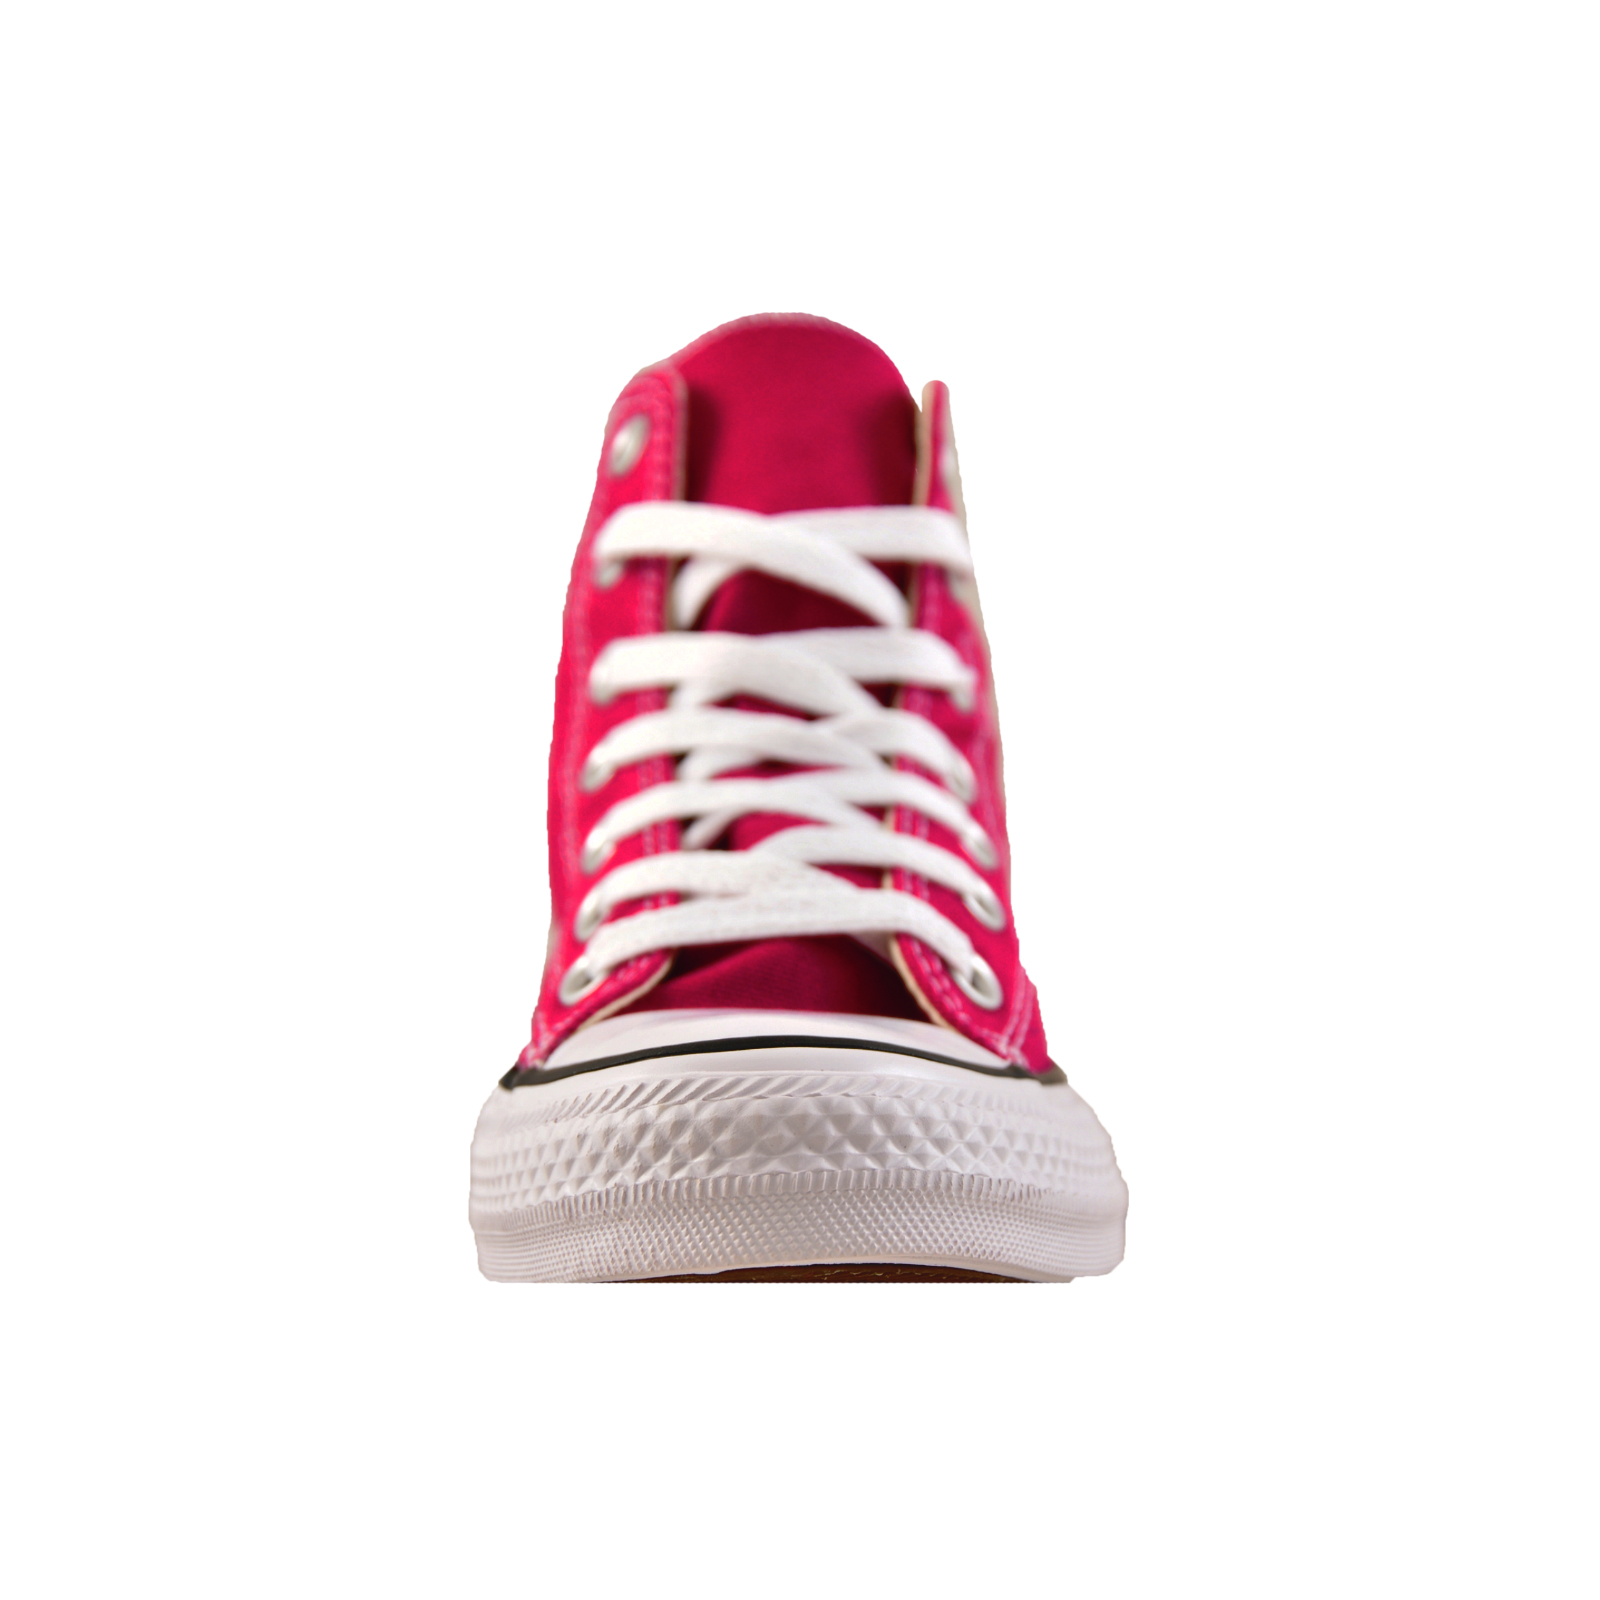 Converse All Star Hi Womens Girls Classic Casual Hi Top  Plimsol Trainers Pink